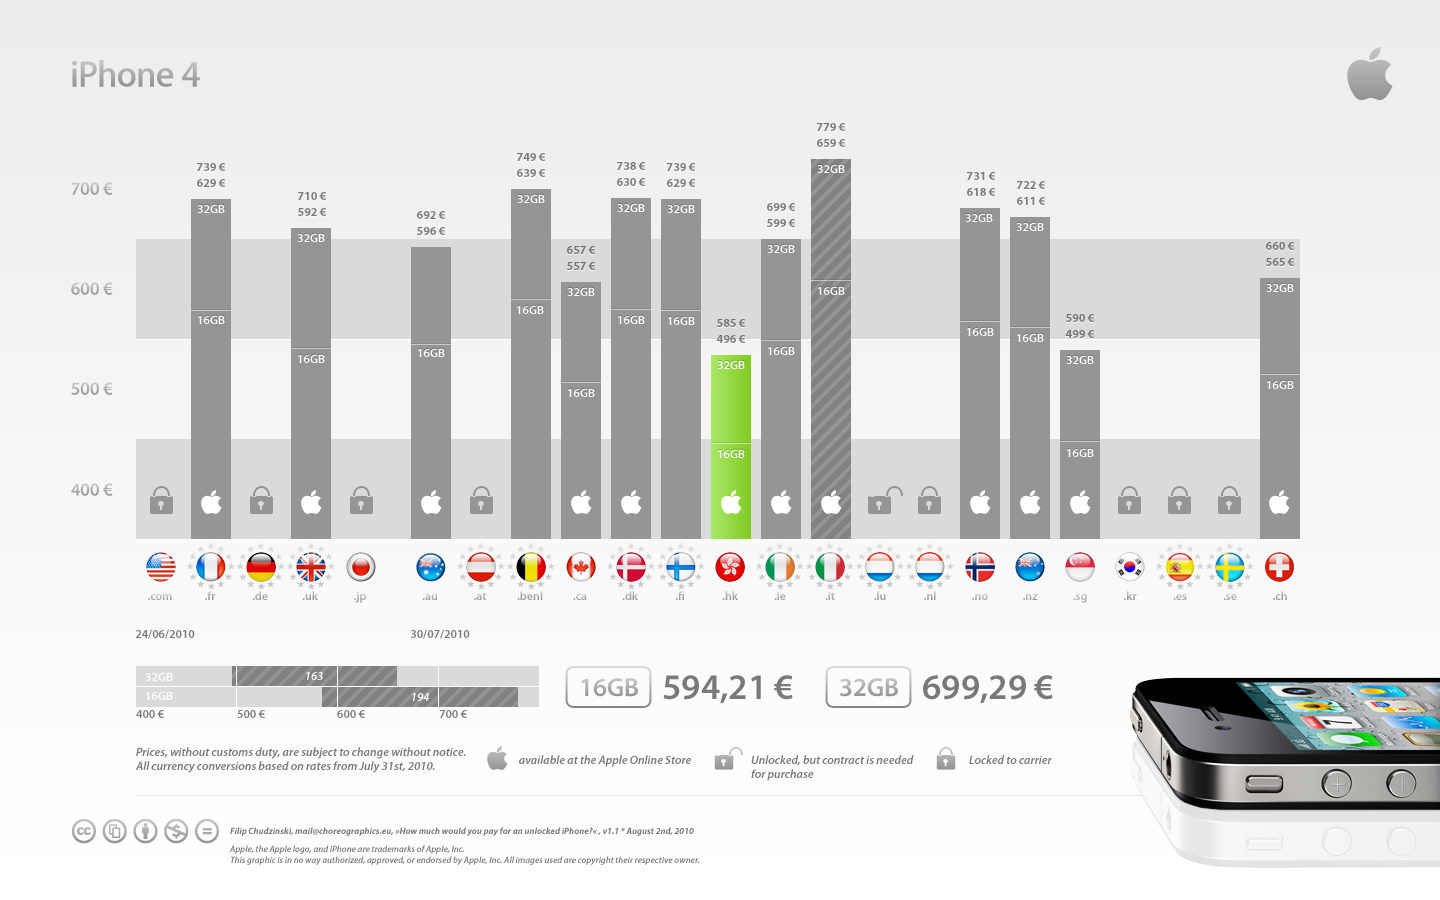 Iphone price in us uk italy france germany spain hong kong singapore